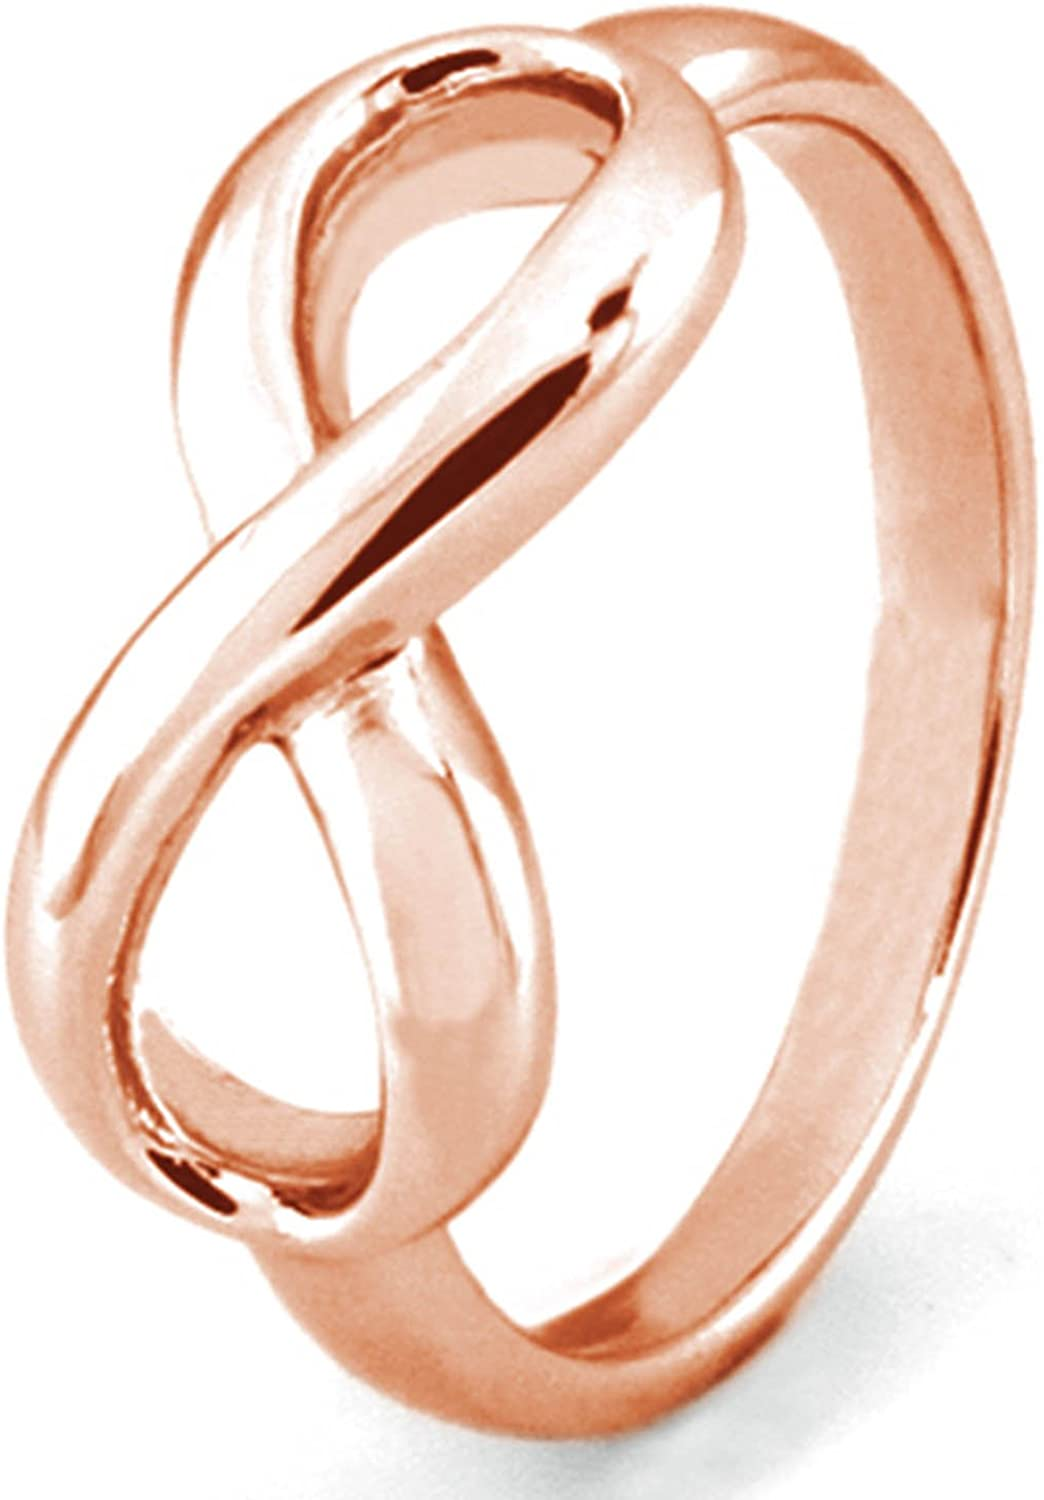 Rose Gold Plated Sterling Silver Infinity Symbol Wedding Band Ring